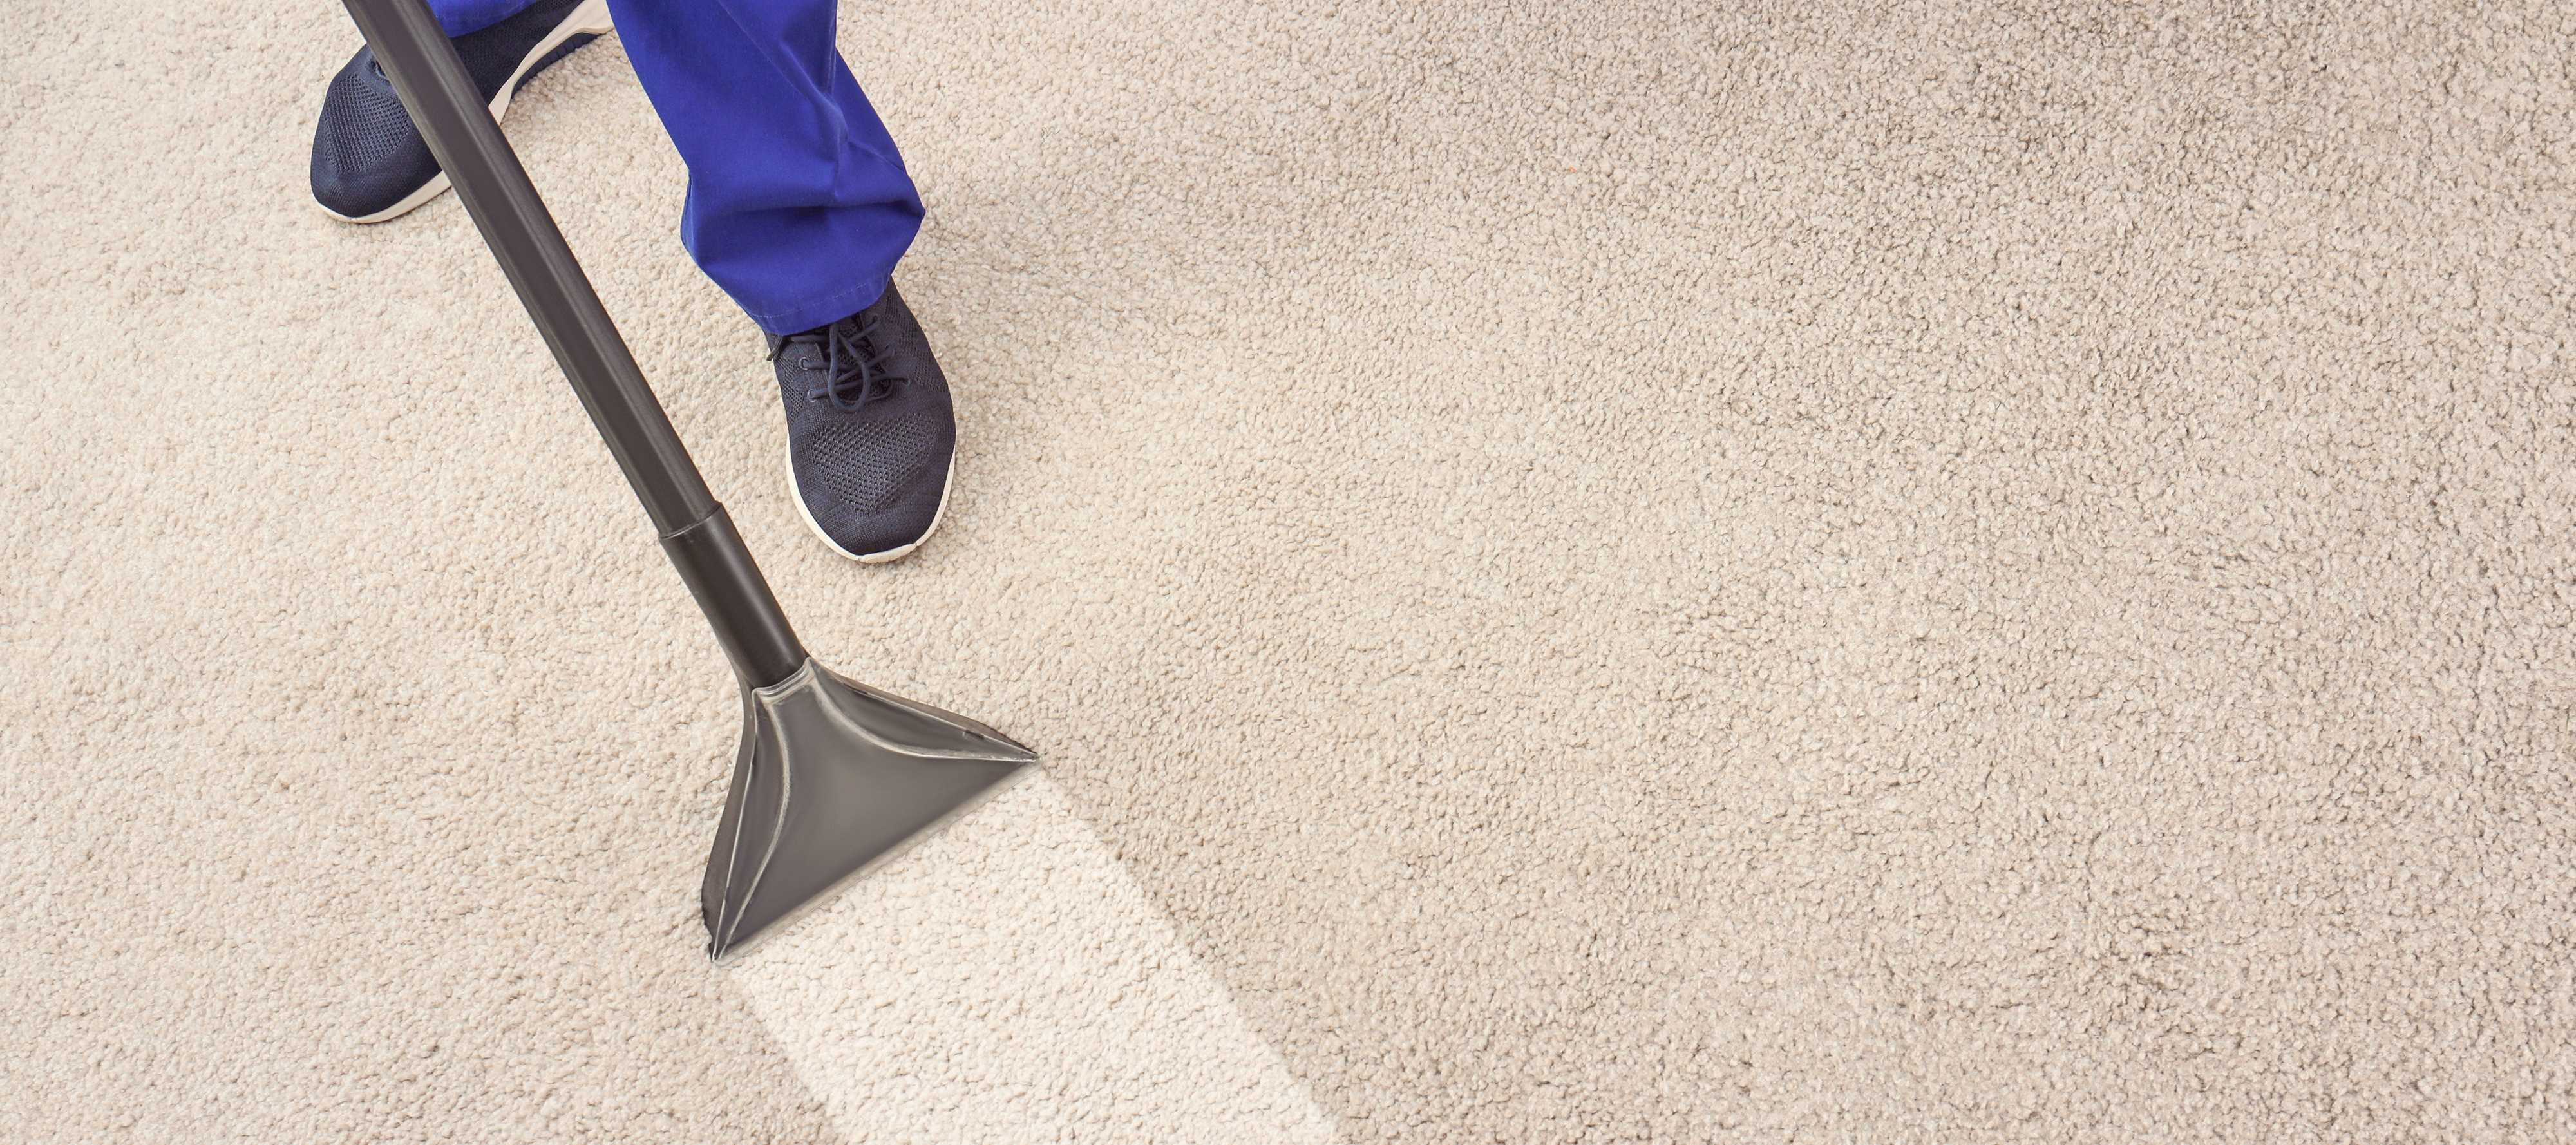 Benefits of Professional Carpet Cleaning in Springfield Missouri